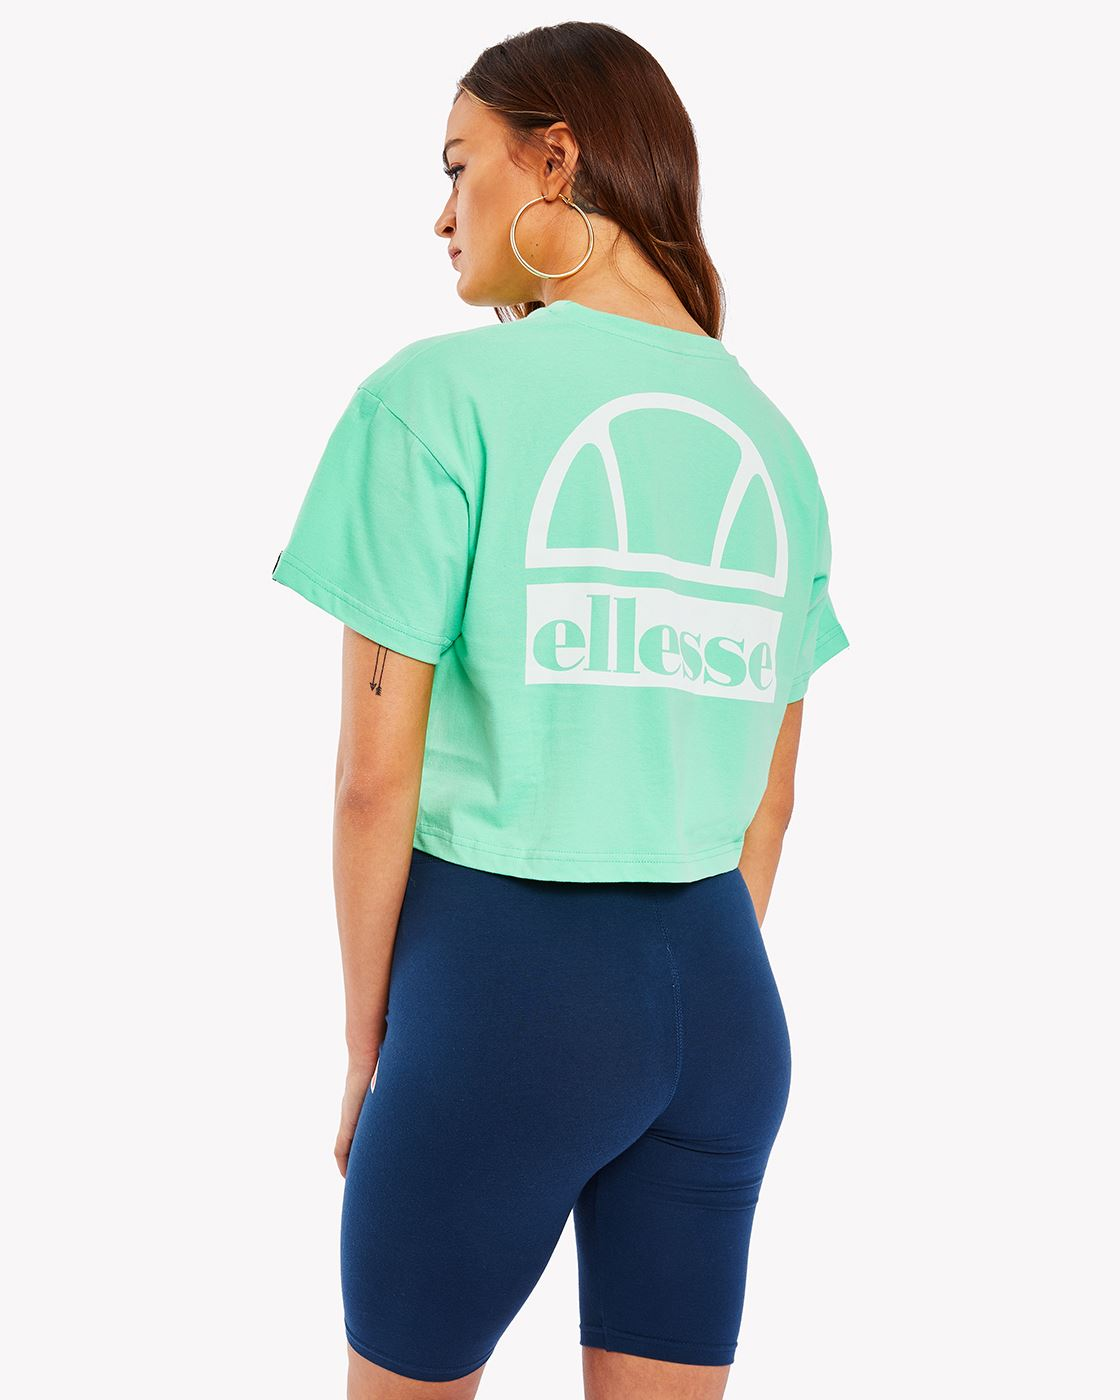 Ellesse-End-of-Line-Clearance-Sale-Bargain-Womens-Tops-T-Shirts-Free-UK-Ship thumbnail 34